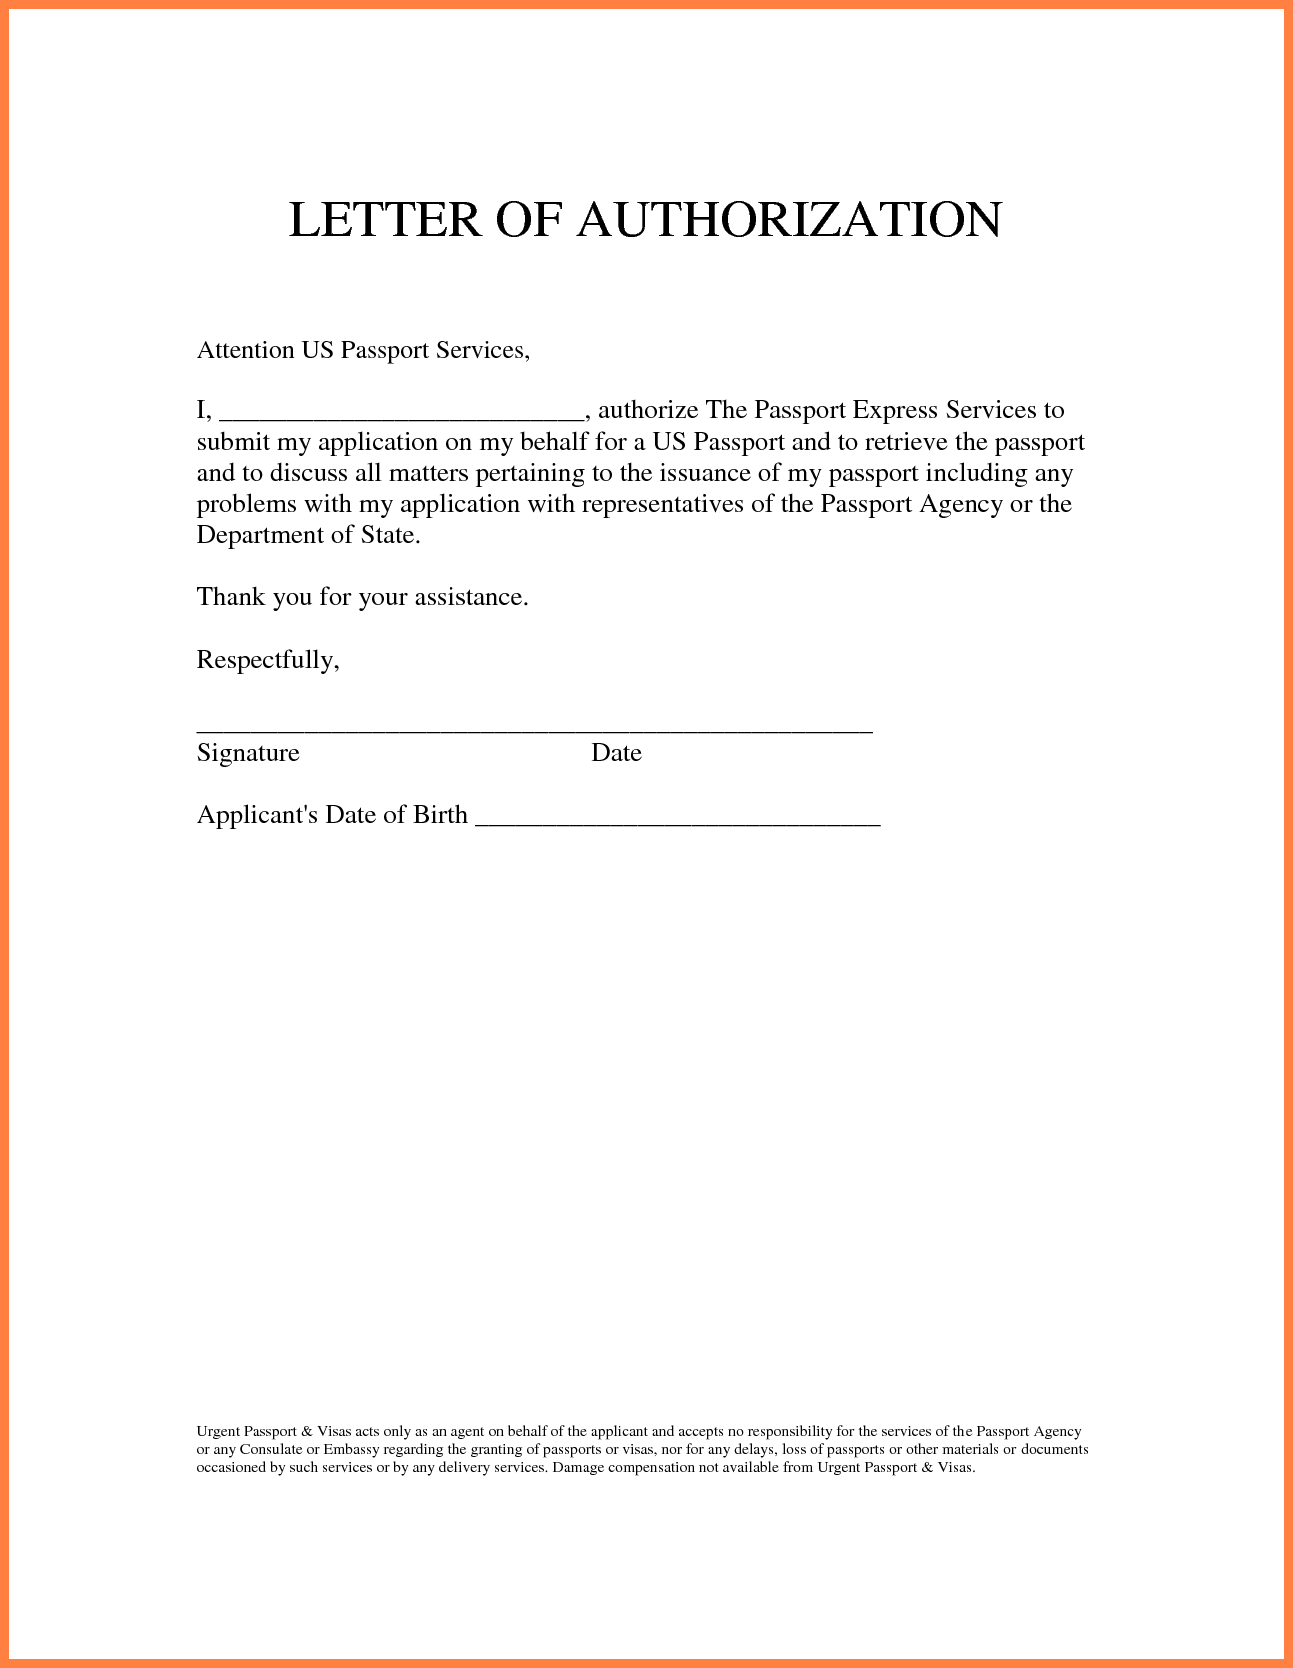 Sample authorization letter granting permissionthorization for sample authorization letter granting permissionthorization for collection tender form spiritdancerdesigns Gallery